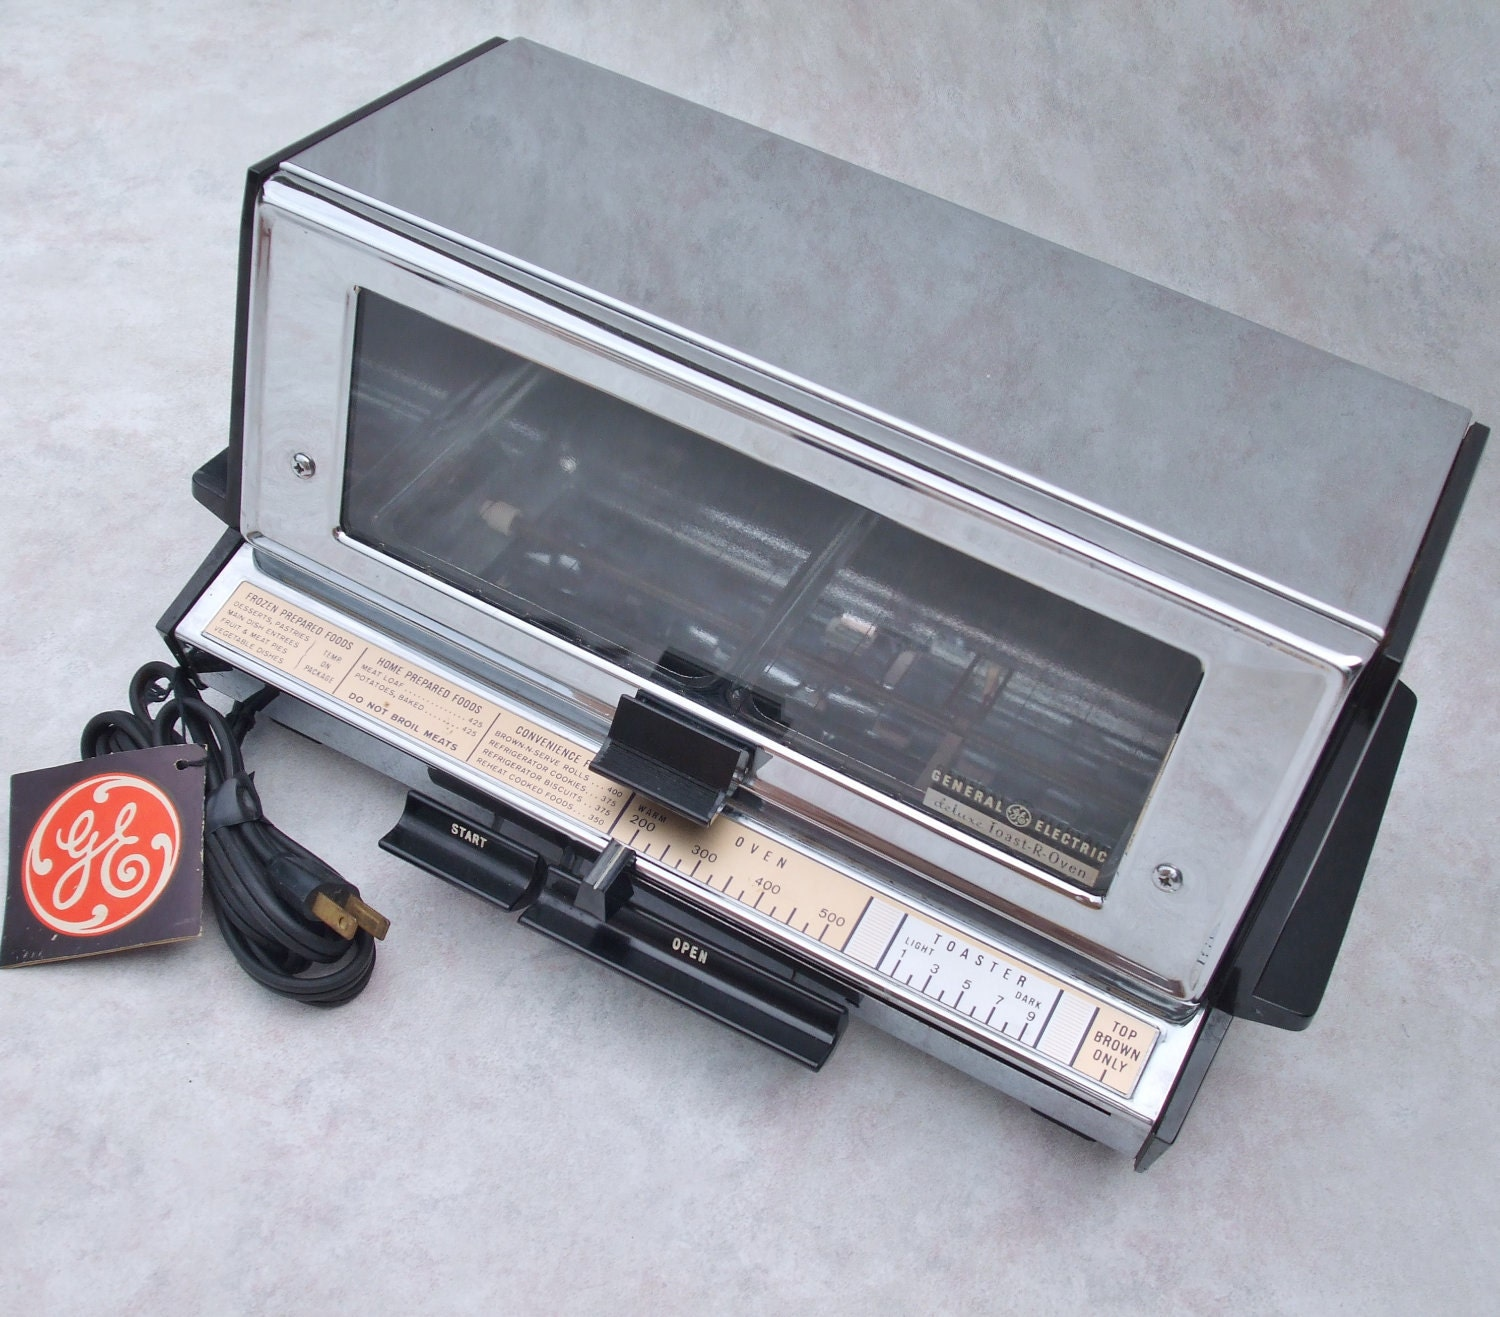 Ge Convection Toaster Oven ~ Oven toaster ge convection